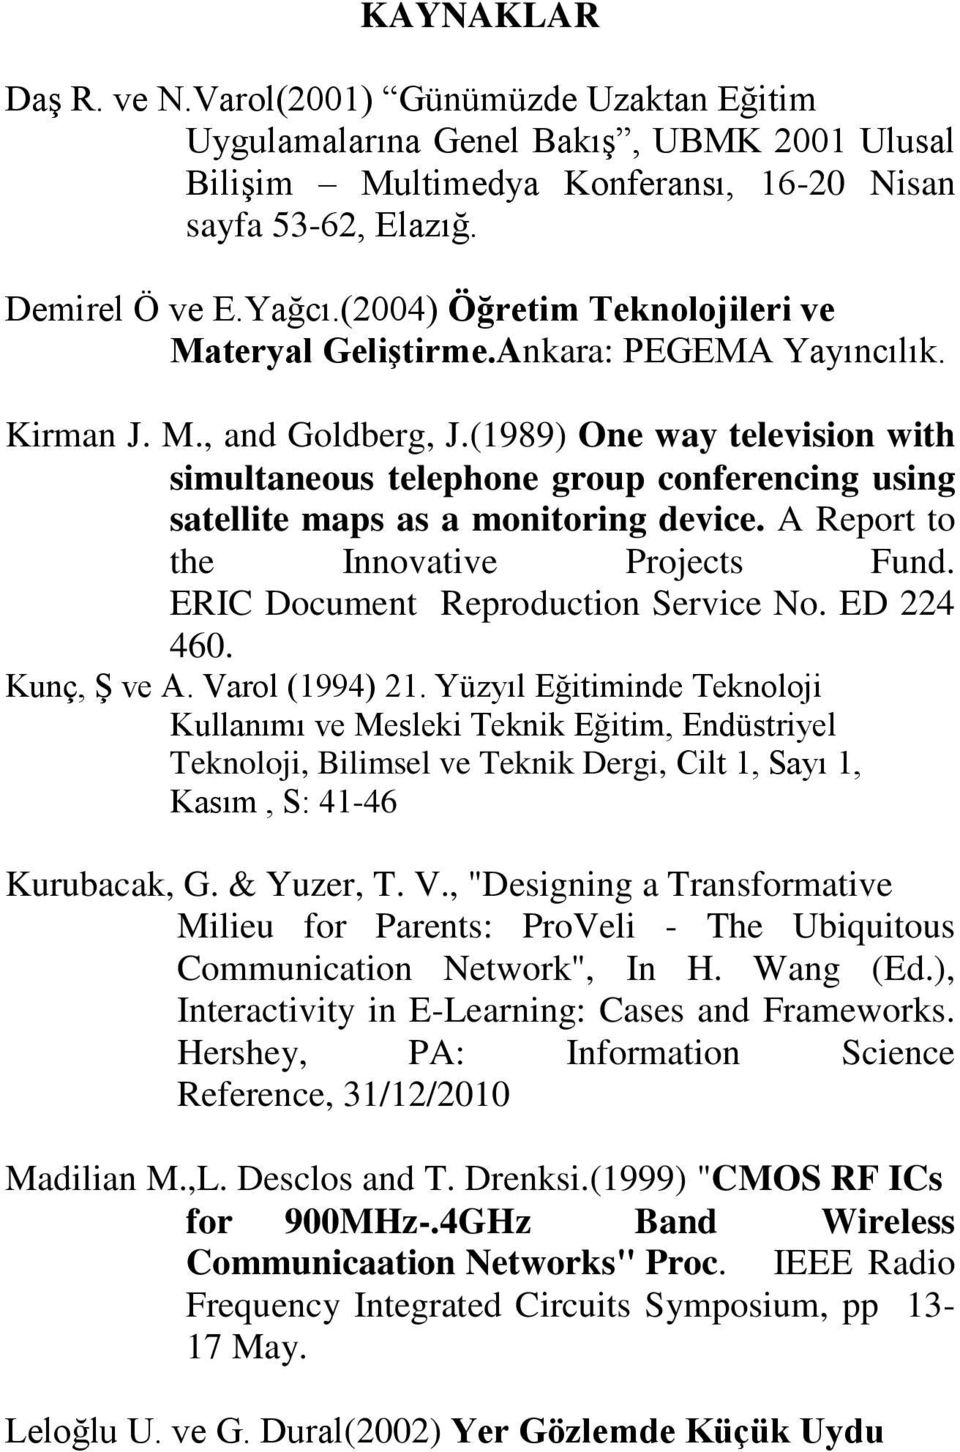 (1989) One way television with simultaneous telephone group conferencing using satellite maps as a monitoring device. A Report to the Innovative Projects Fund. ERIC Document Reproduction Service No.